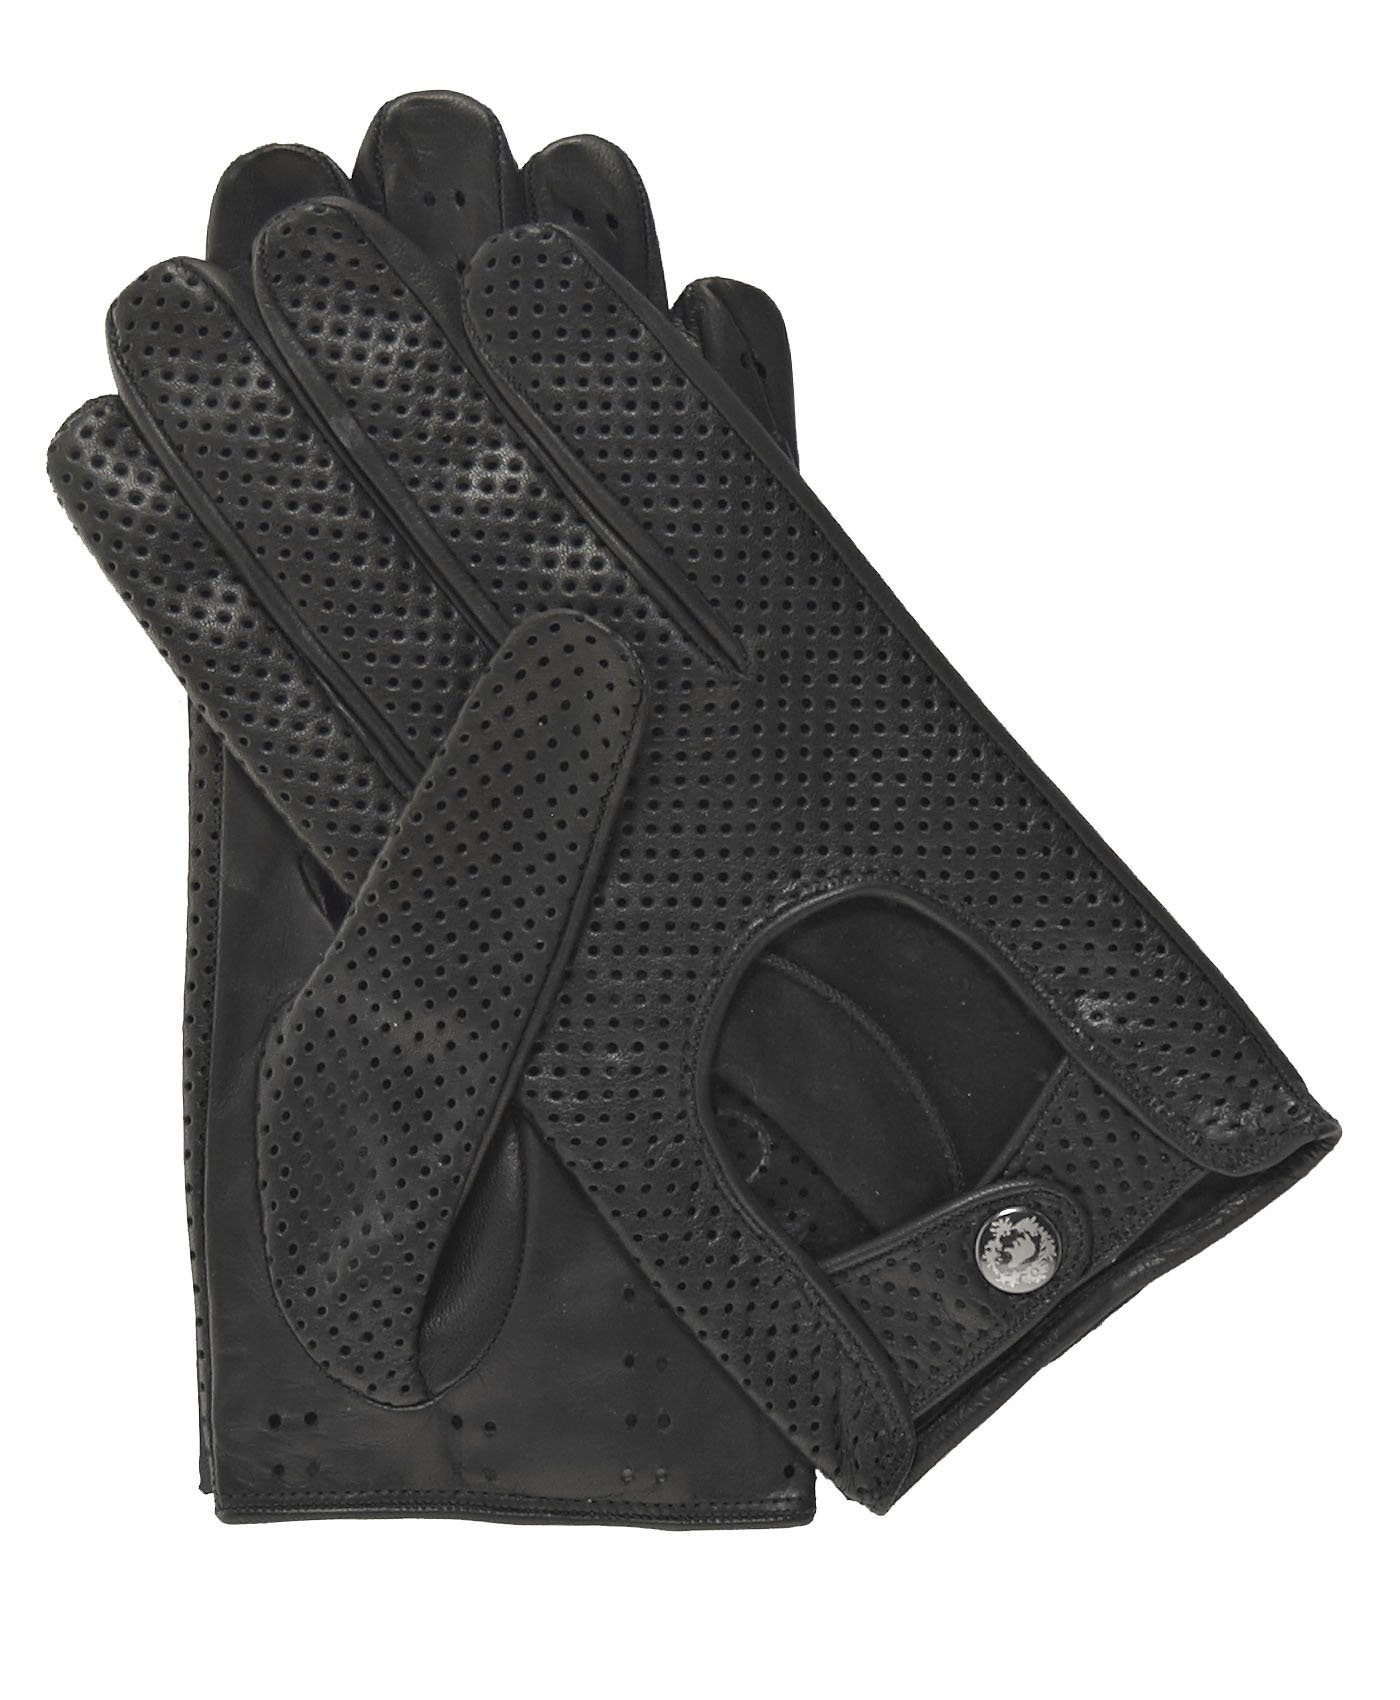 Fratelli Orsini Men's Ventilated Leather Driving Gloves Size 9 Color Black